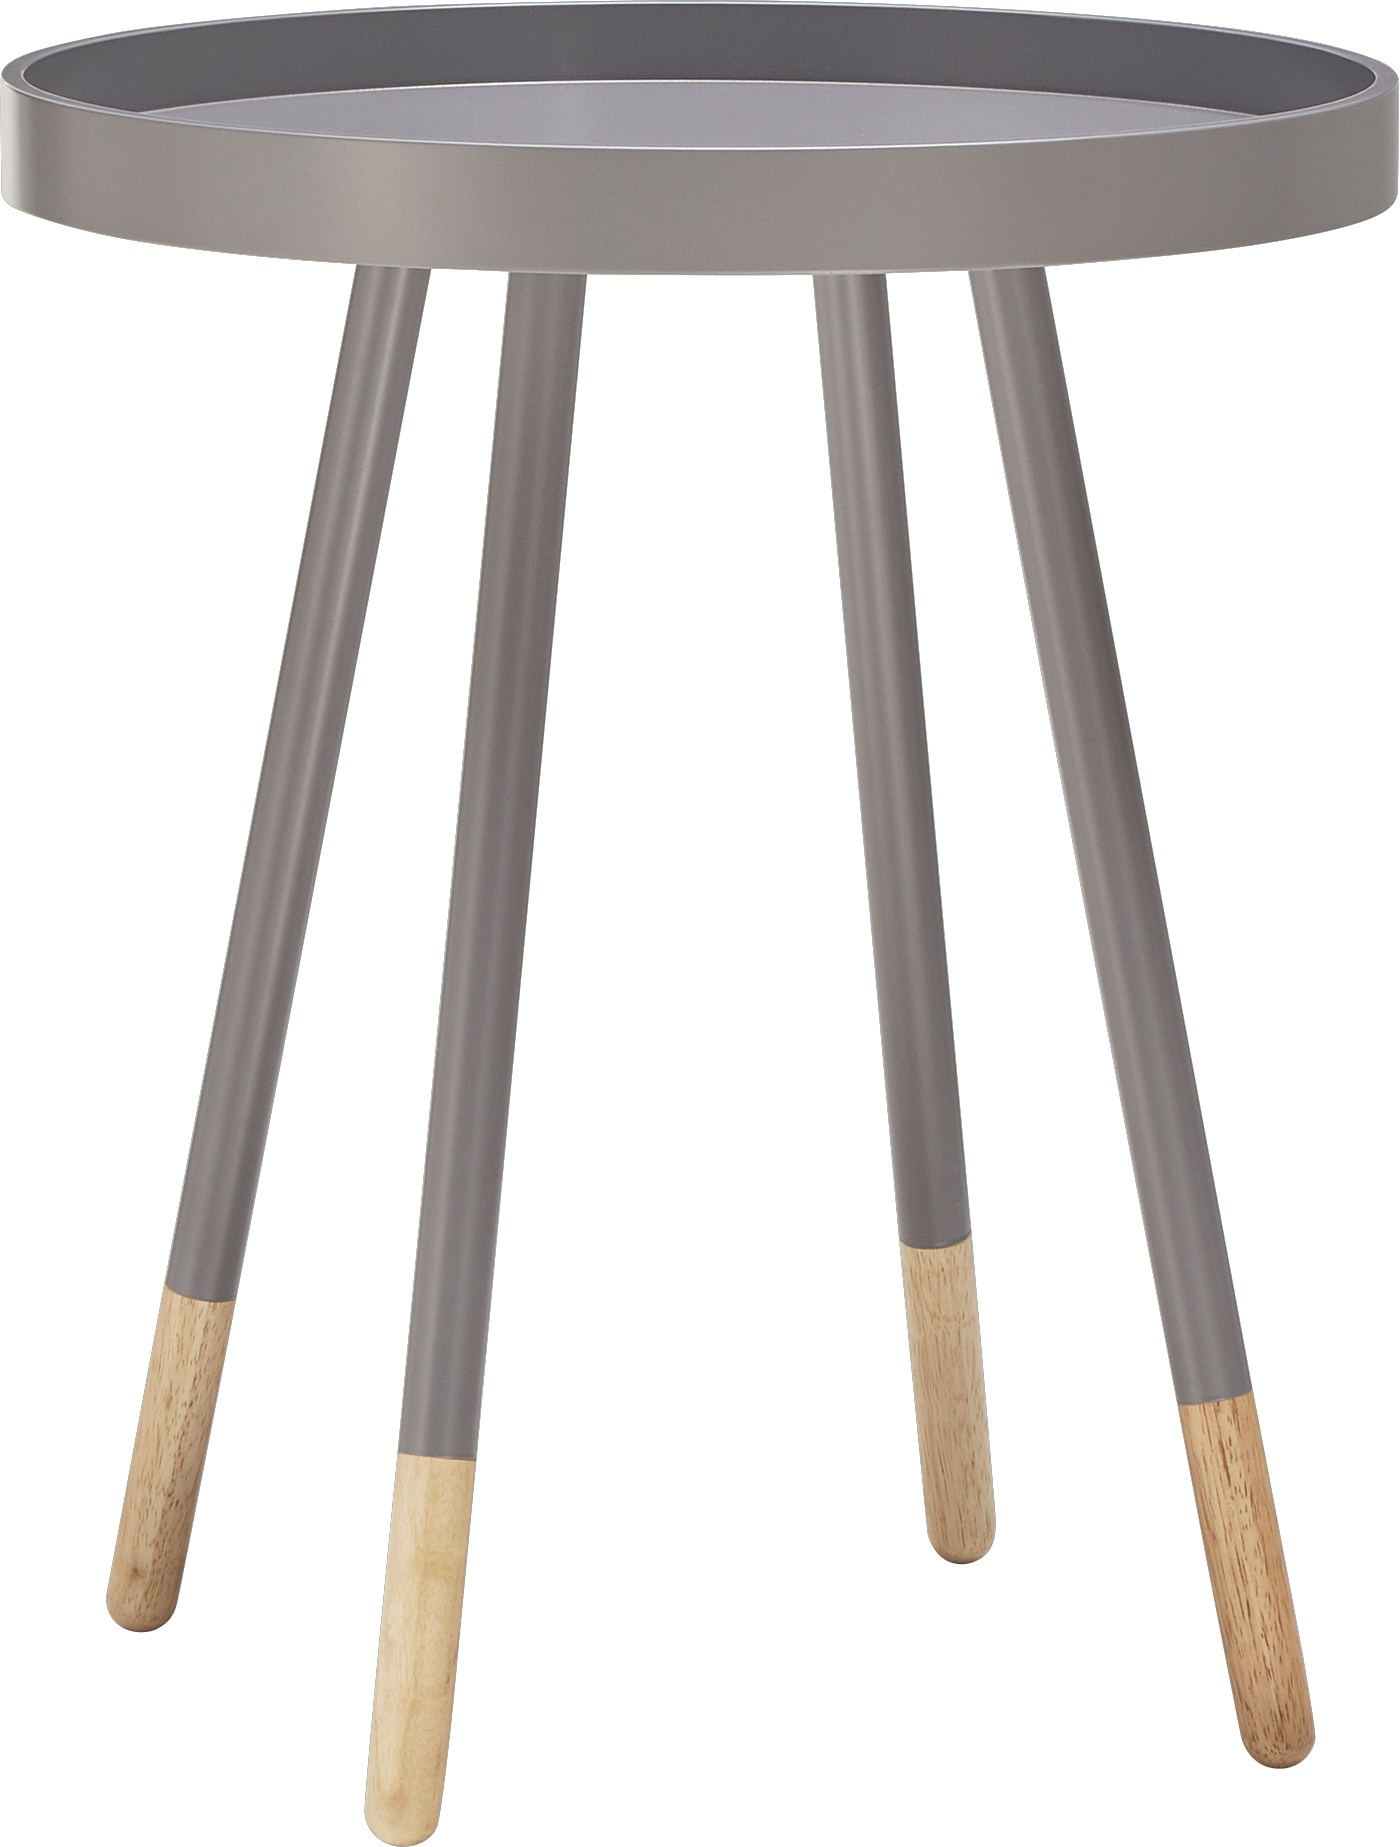 sibley lane gray accent table items colors sibleylane target kitchen chairs contemporary bedside lamps desk small round and set nautical decor aluminum outdoor occasional tables